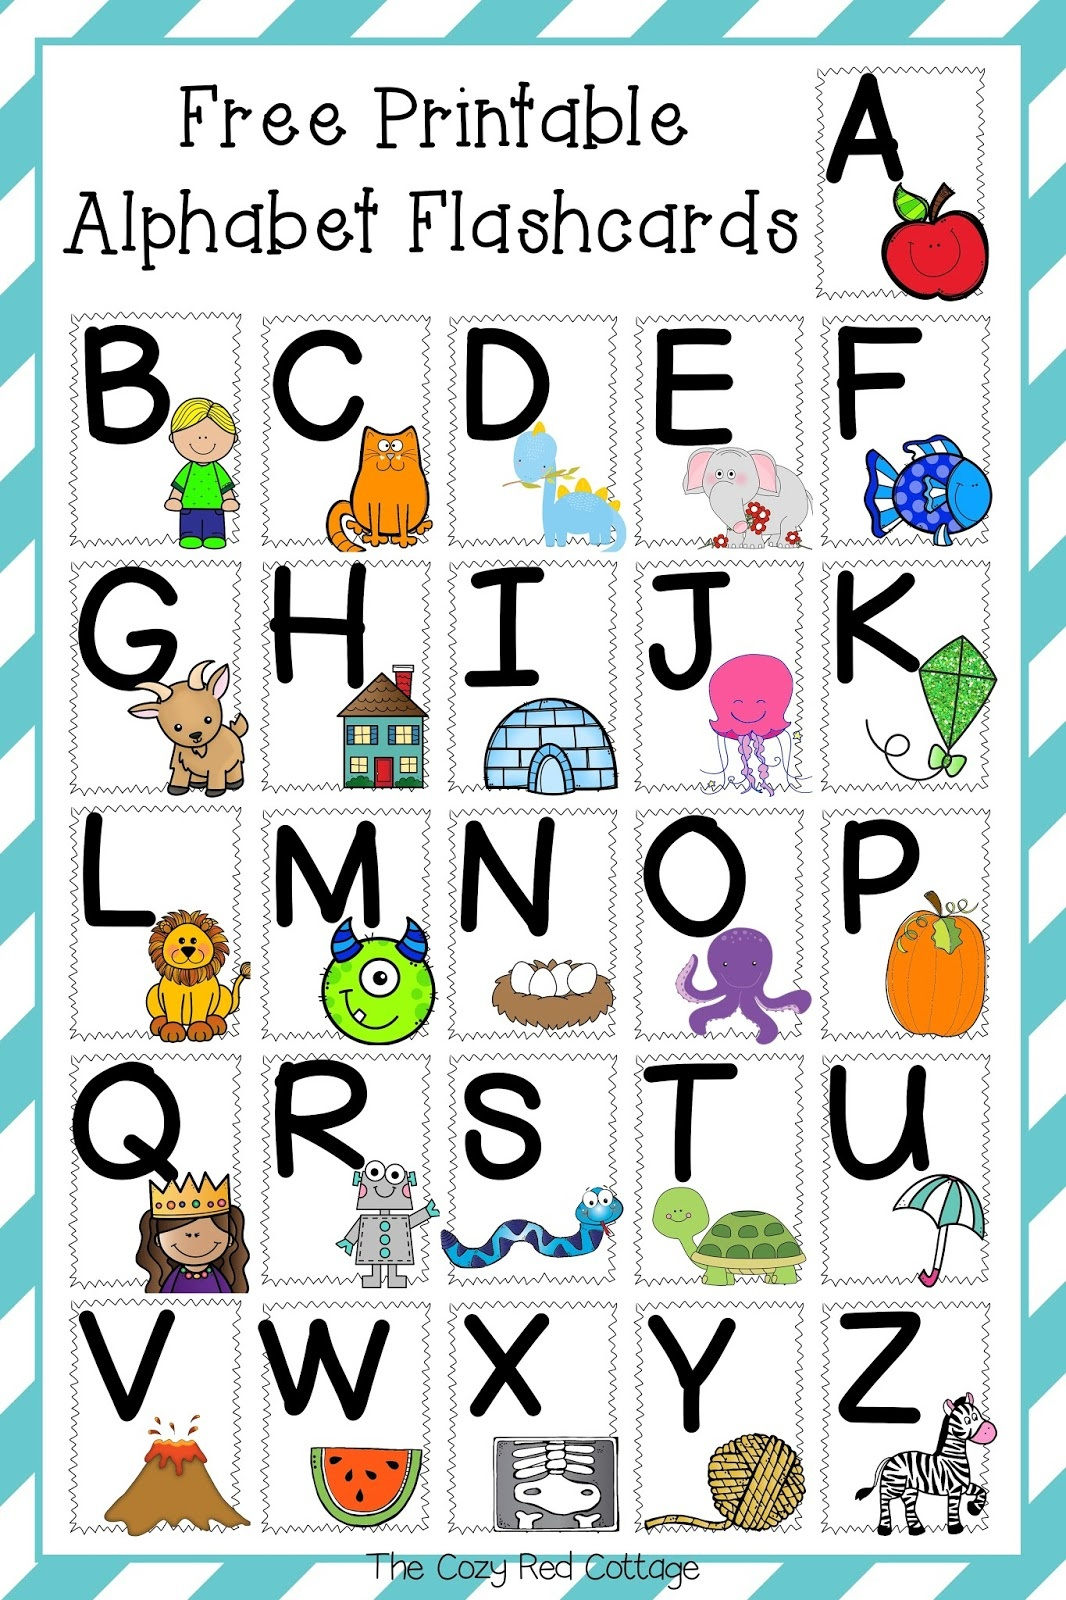 The Cozy Red Cottage: Free Printable Alphabet Flashcards - Abc Flash Cards Free Printable